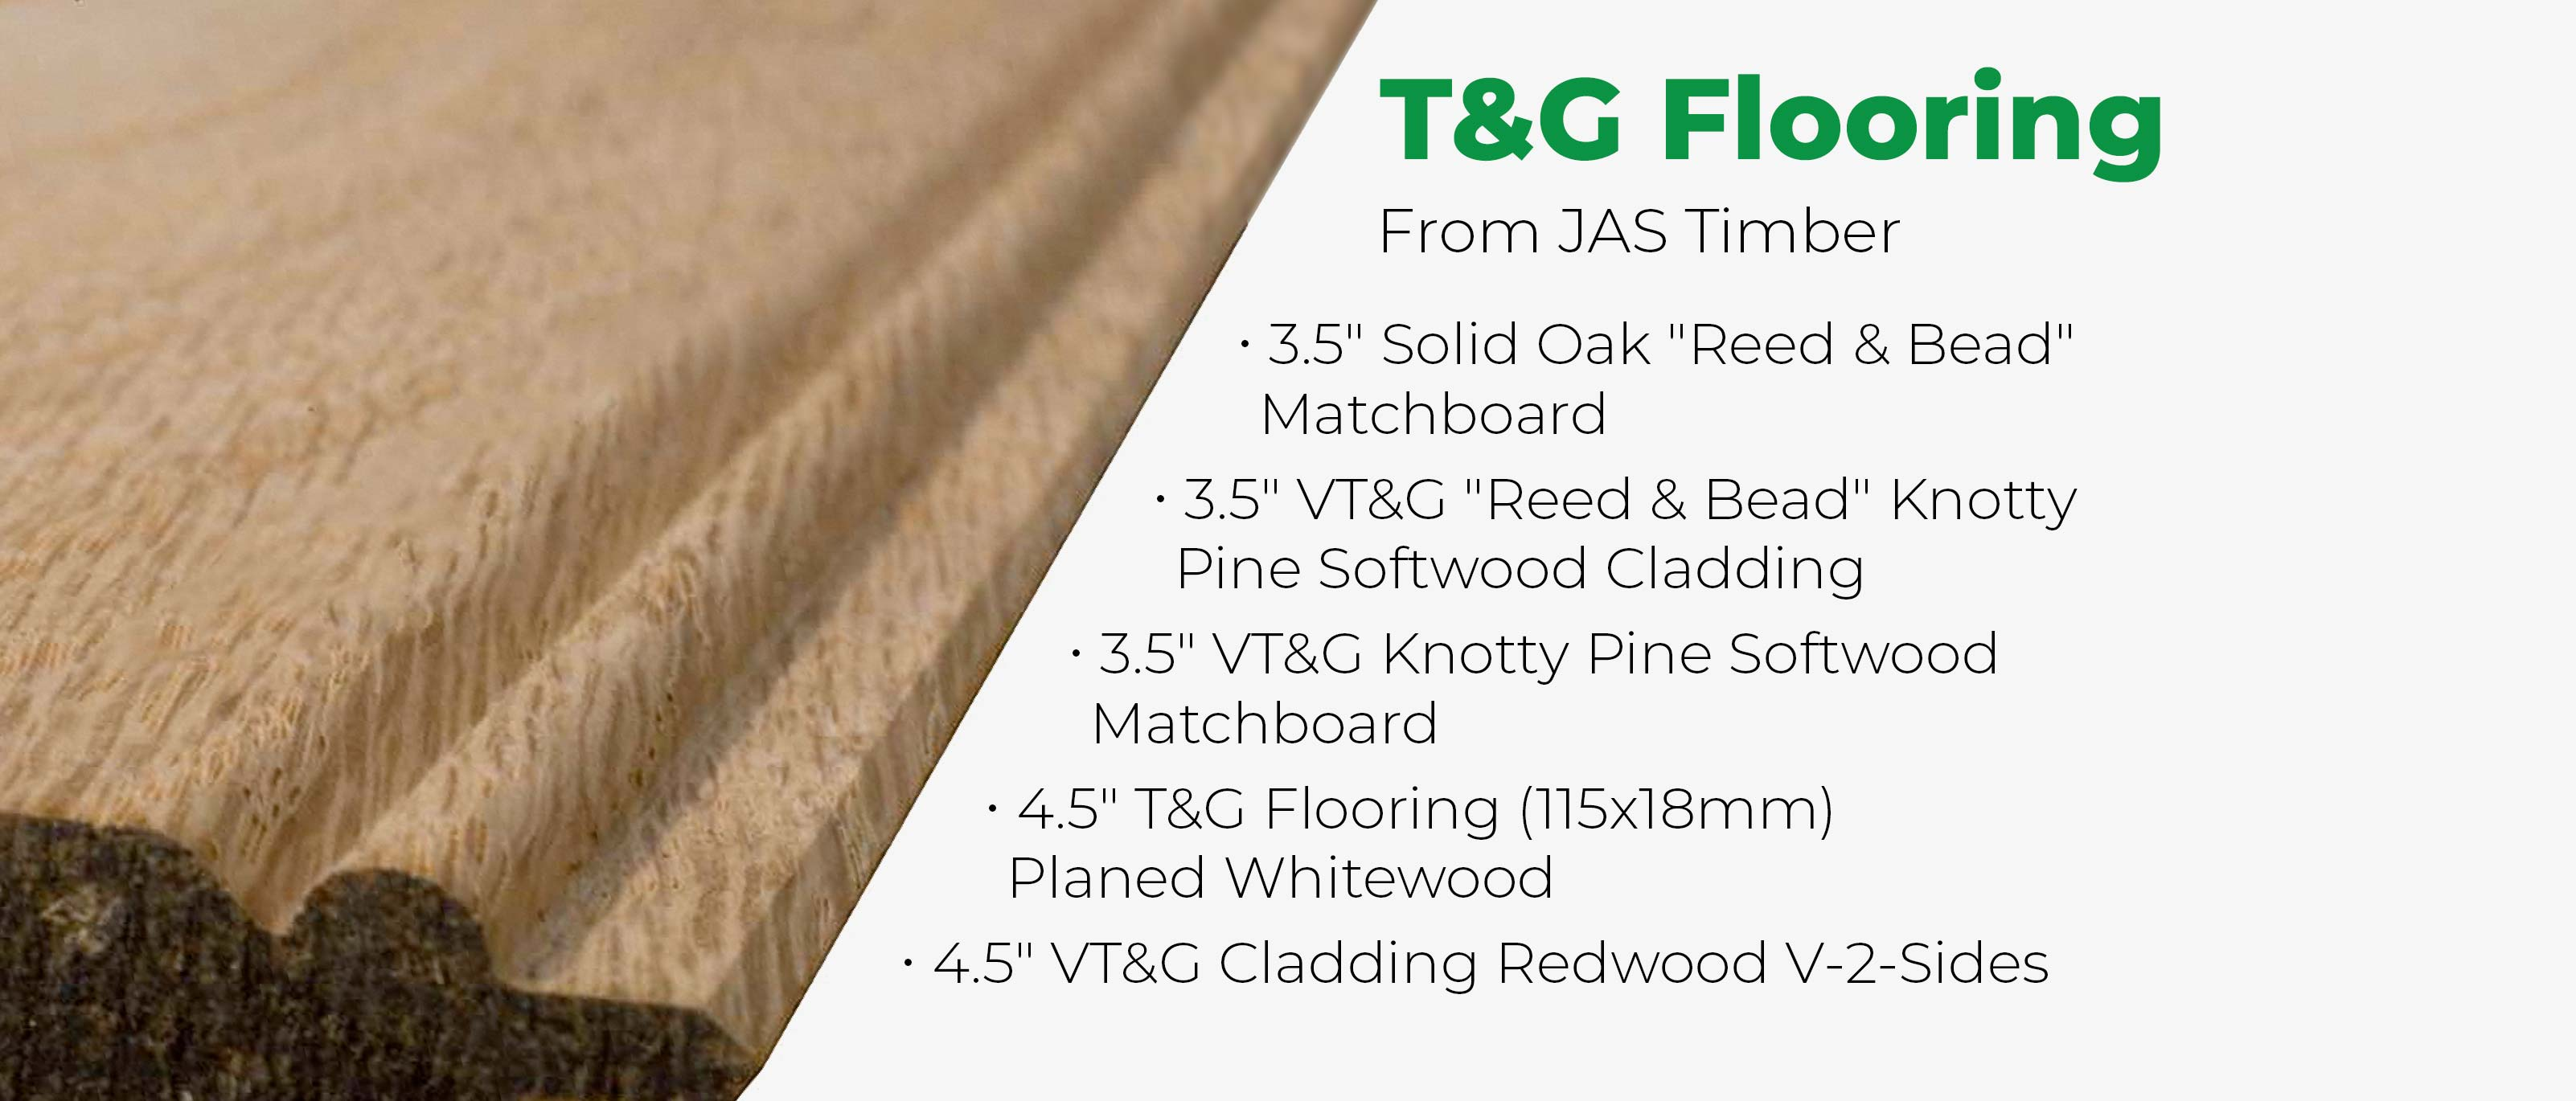 T&G Flooring From Jas Timber